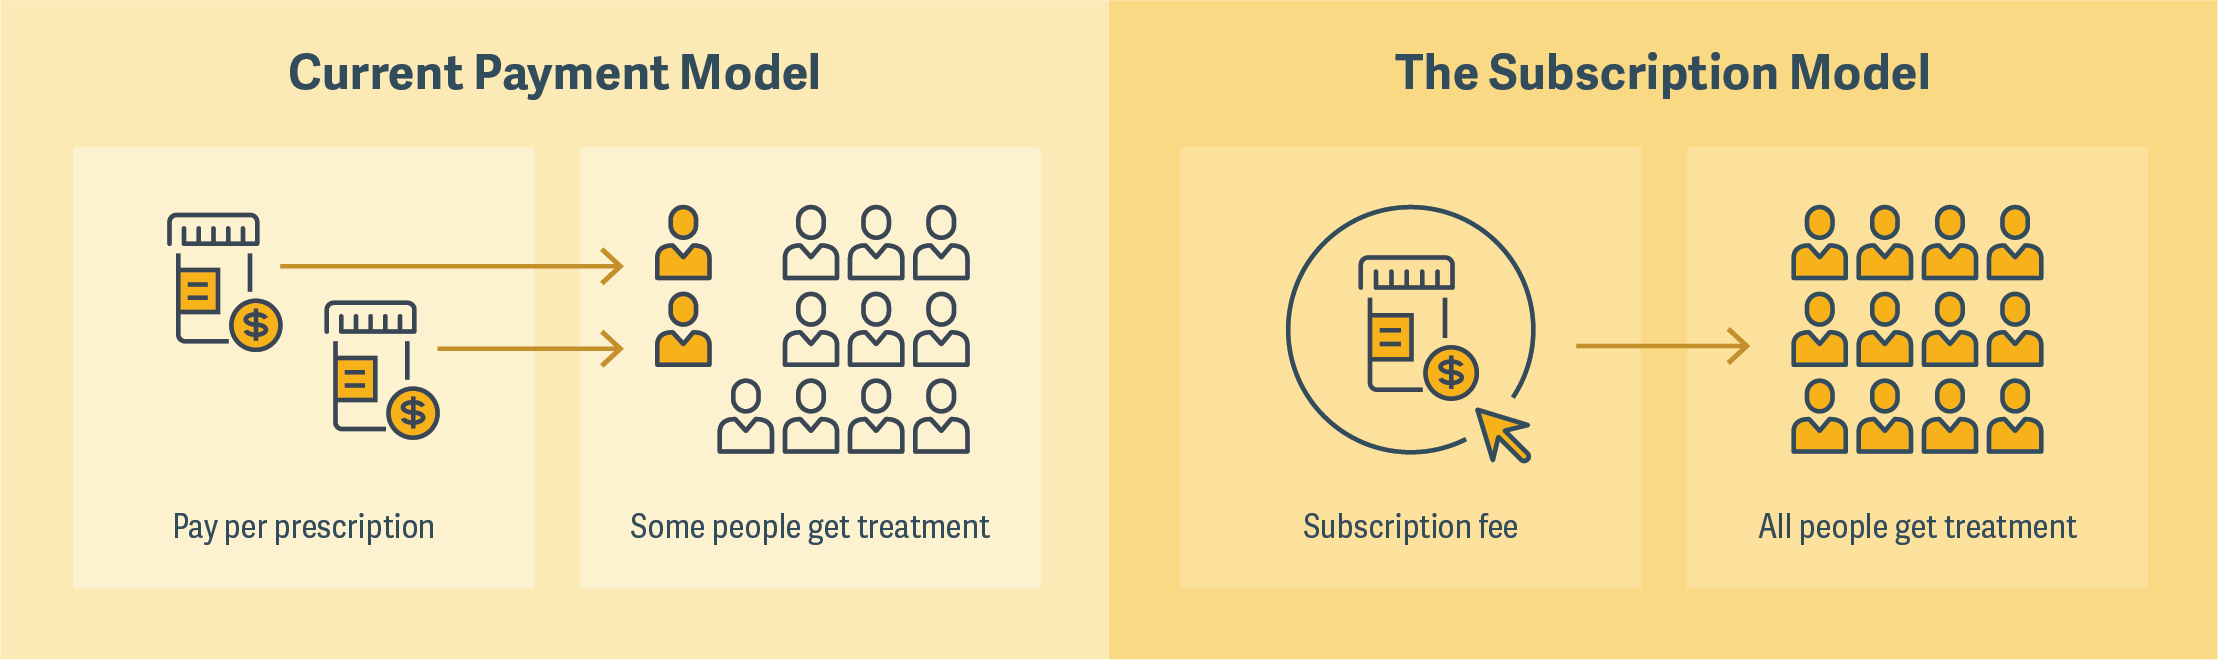 drug-pricing-model-comparison.png